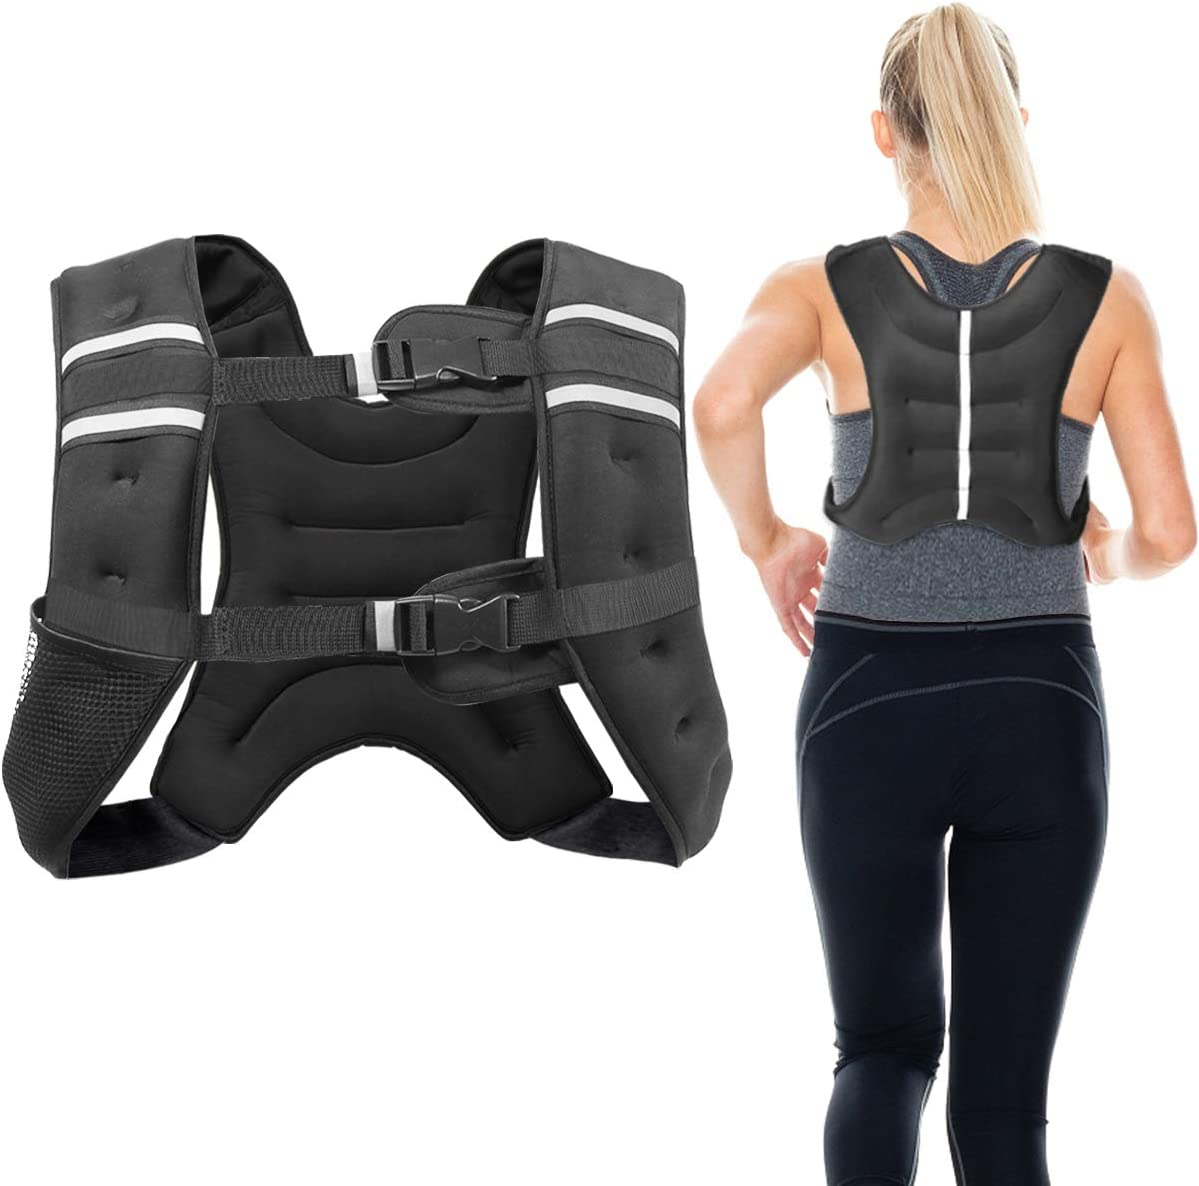 Letra Weighted Vest Workout Equipment Walking for Men Women Jogging Training Workout 12lbs//16lbs Body Weight Vests Adjustable for Running